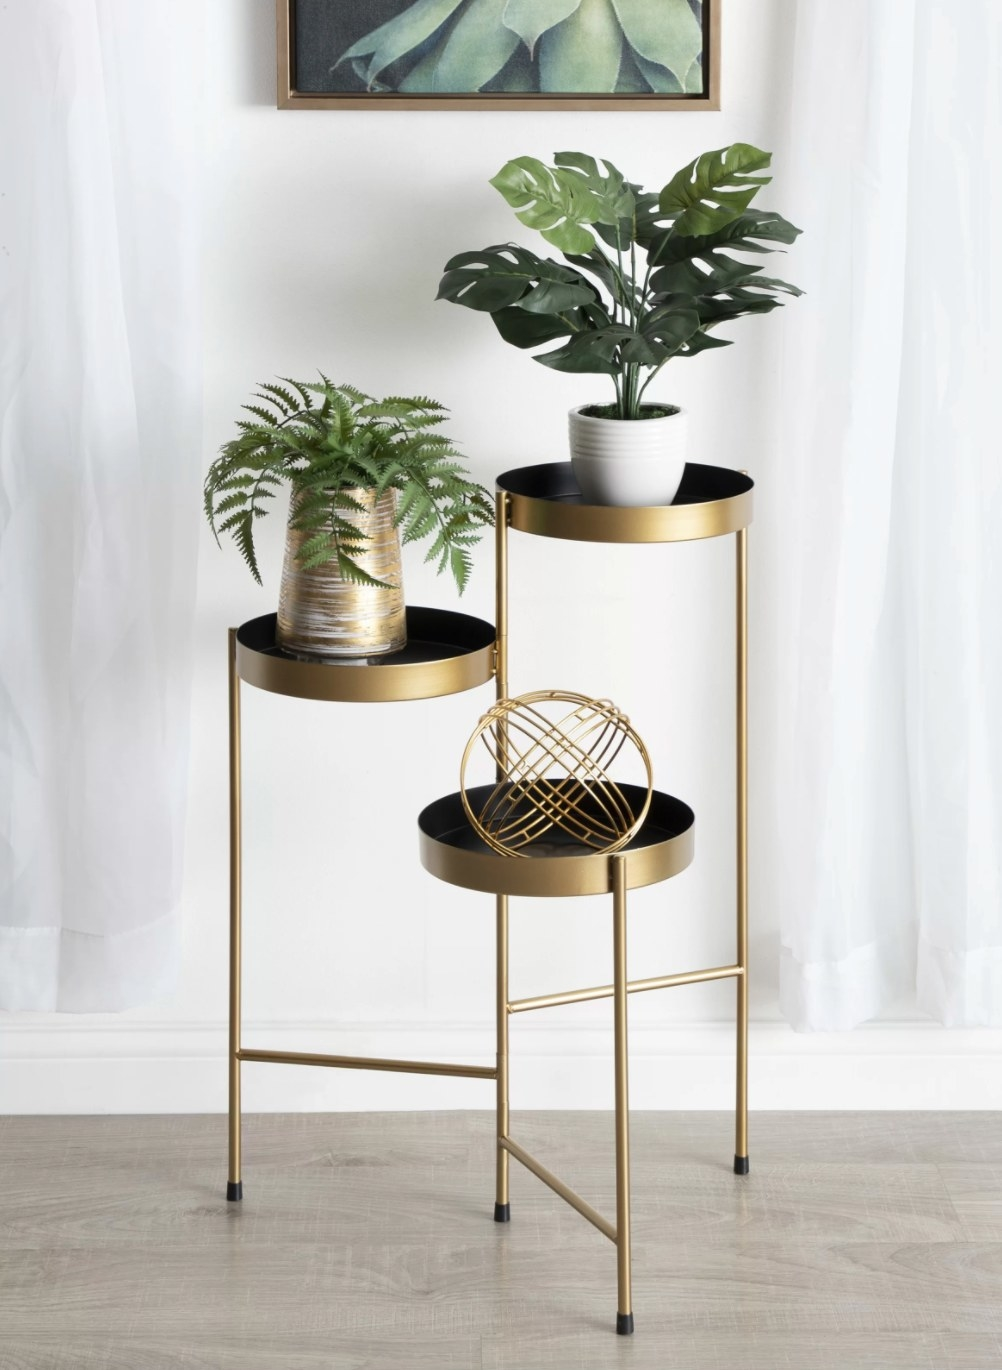 The round multi-tiered plant stand in gold and black holding multiple plants